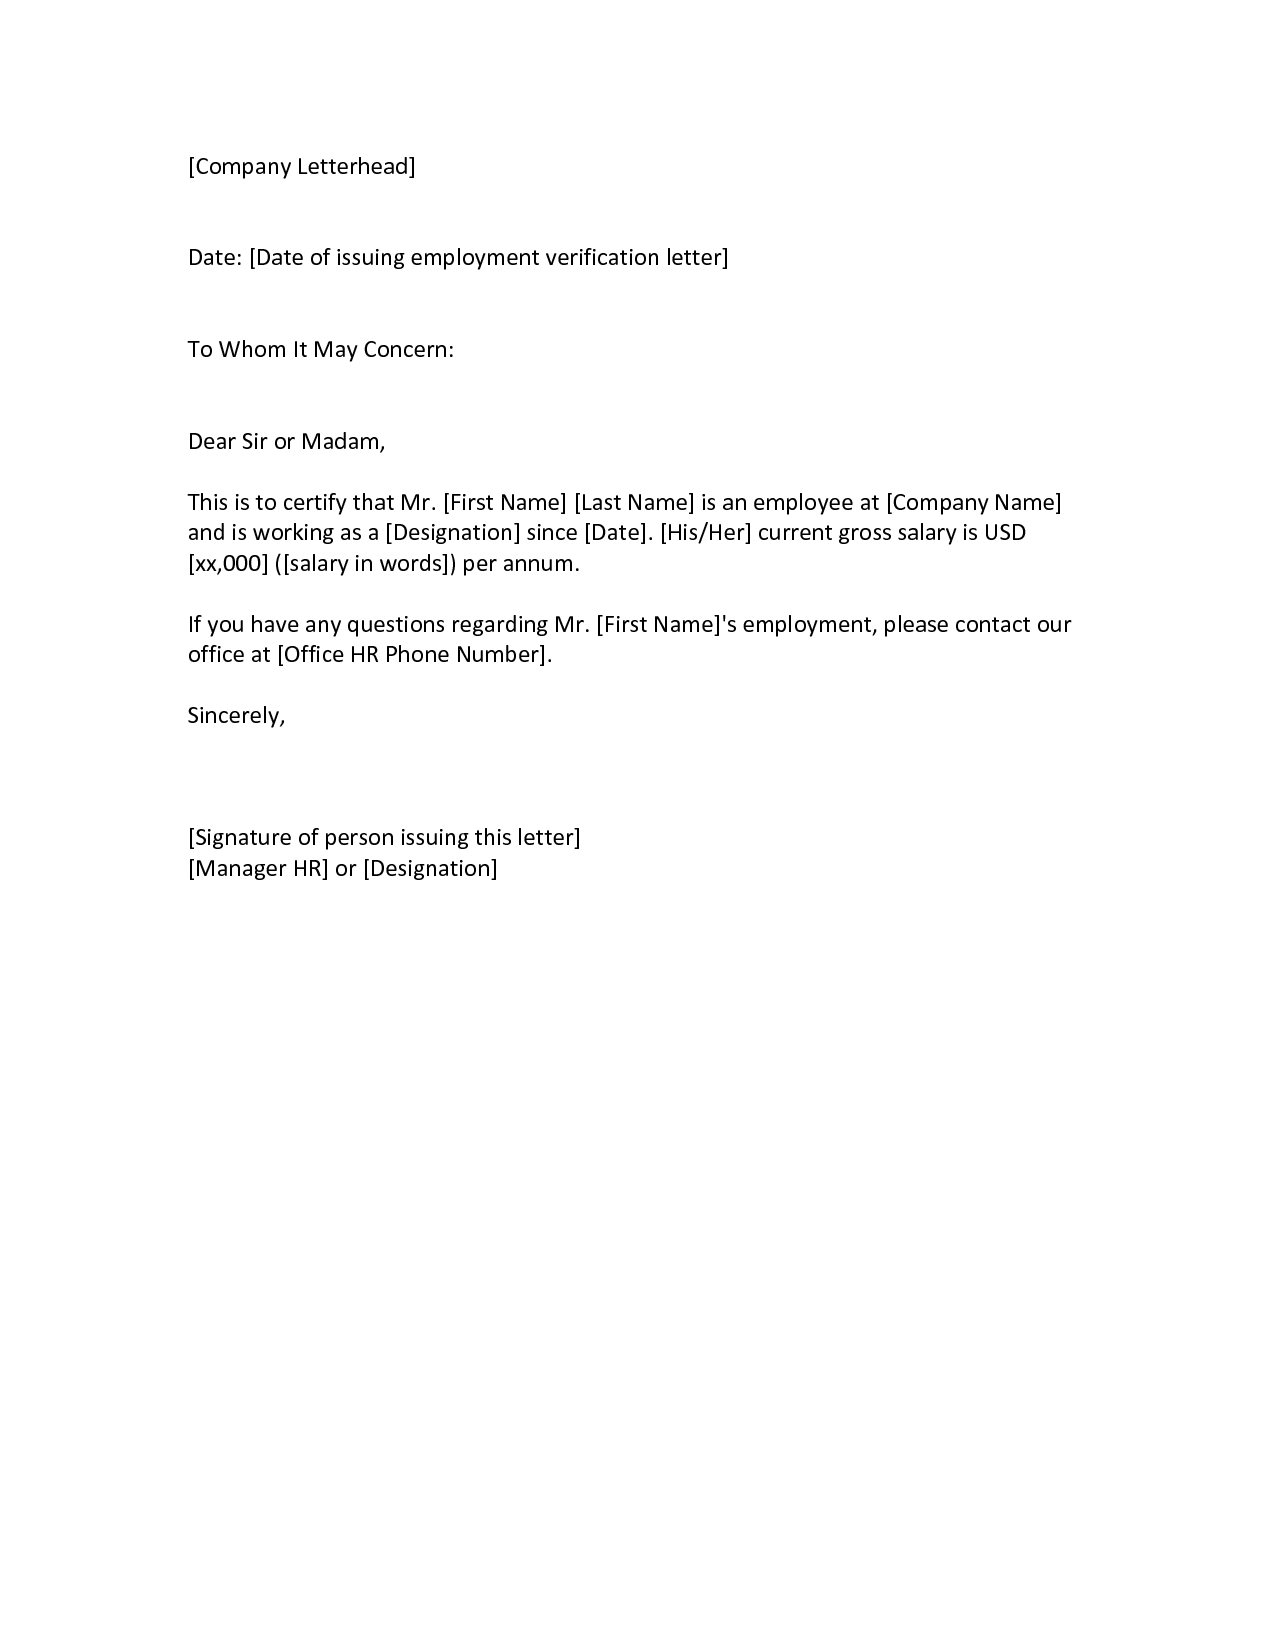 Employment Verification Letter Template Word | Best Business Template